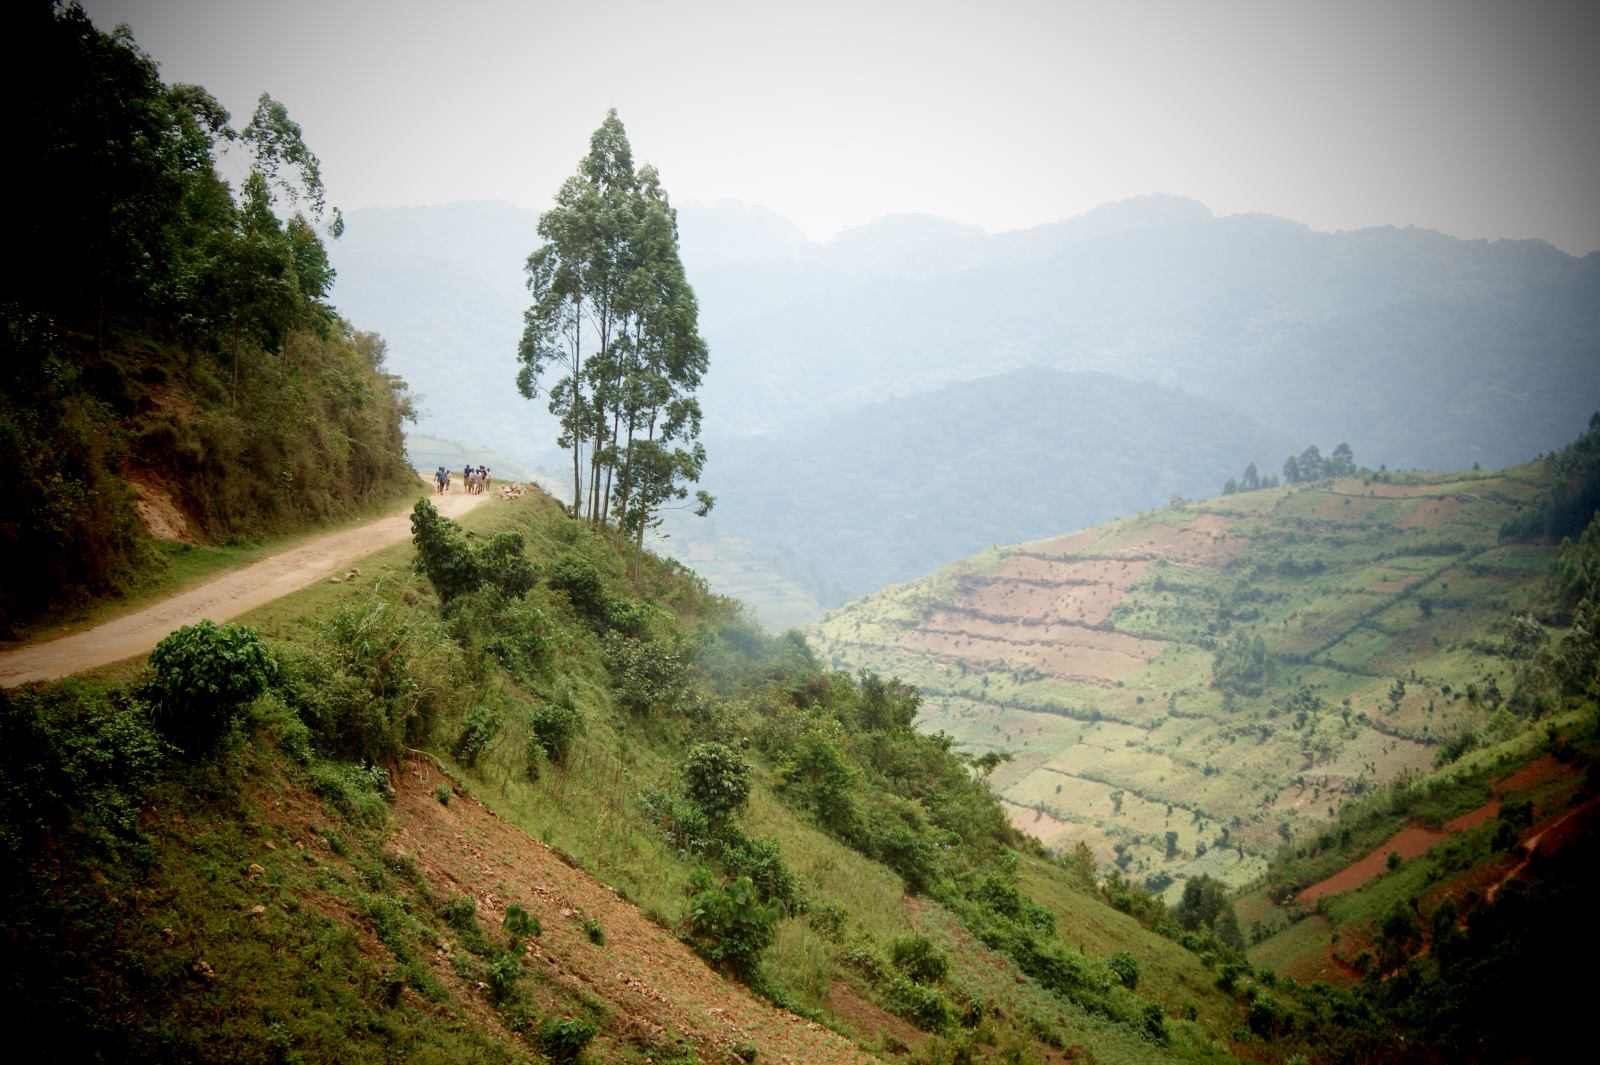 Safari to Bwindi National Park in Uganda